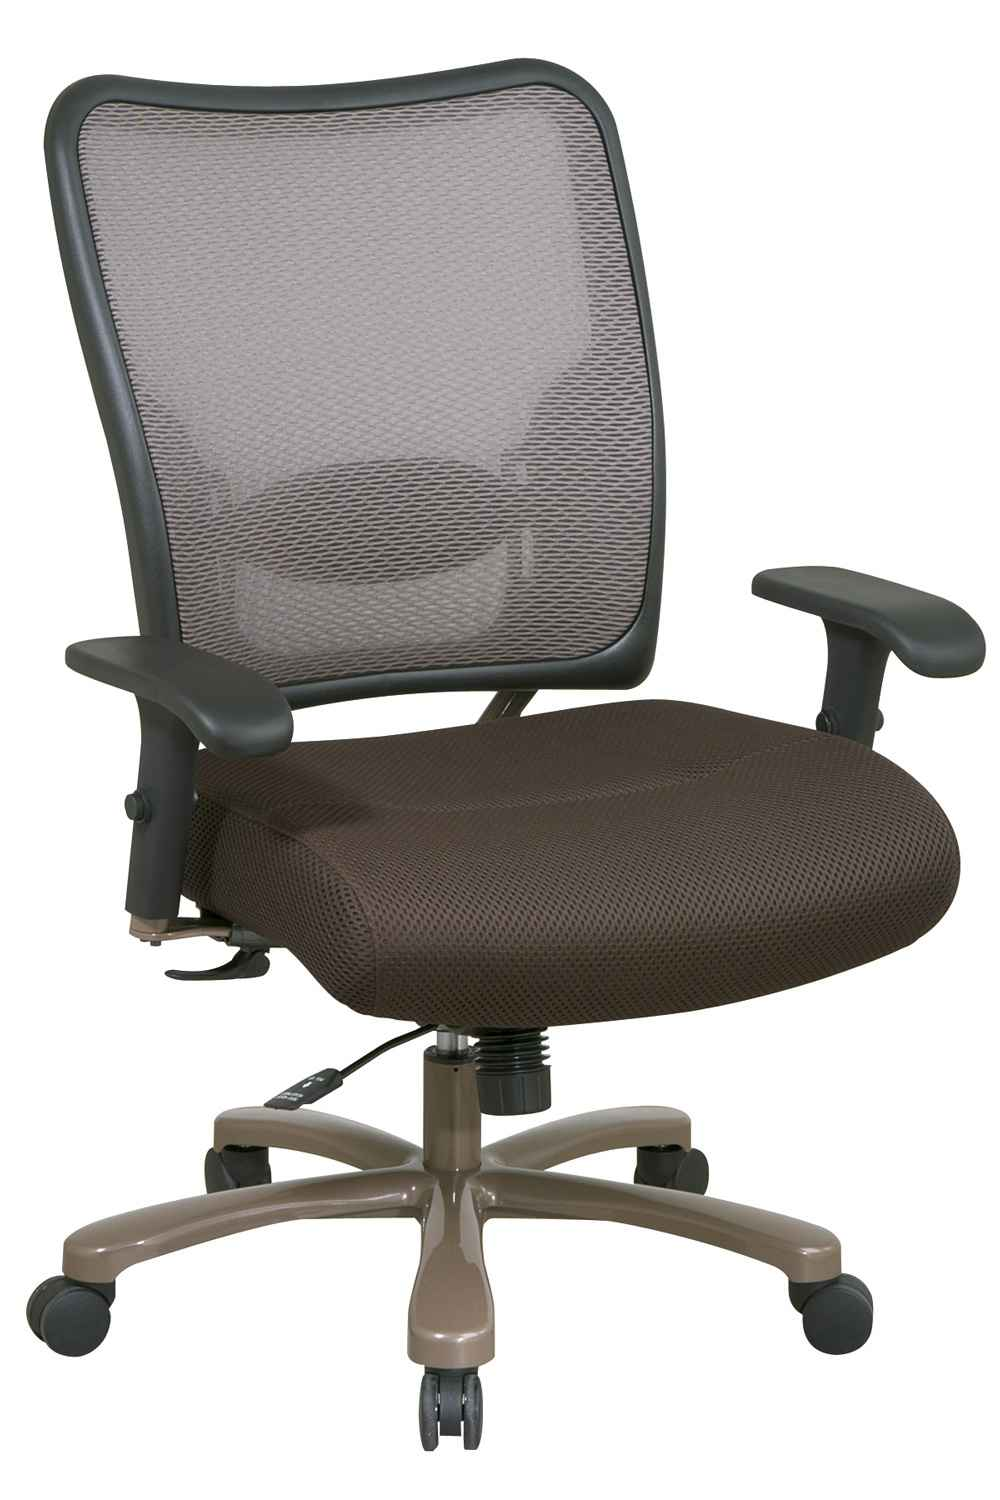 Desk Chairs For Heavy People Home Decoration Ideas